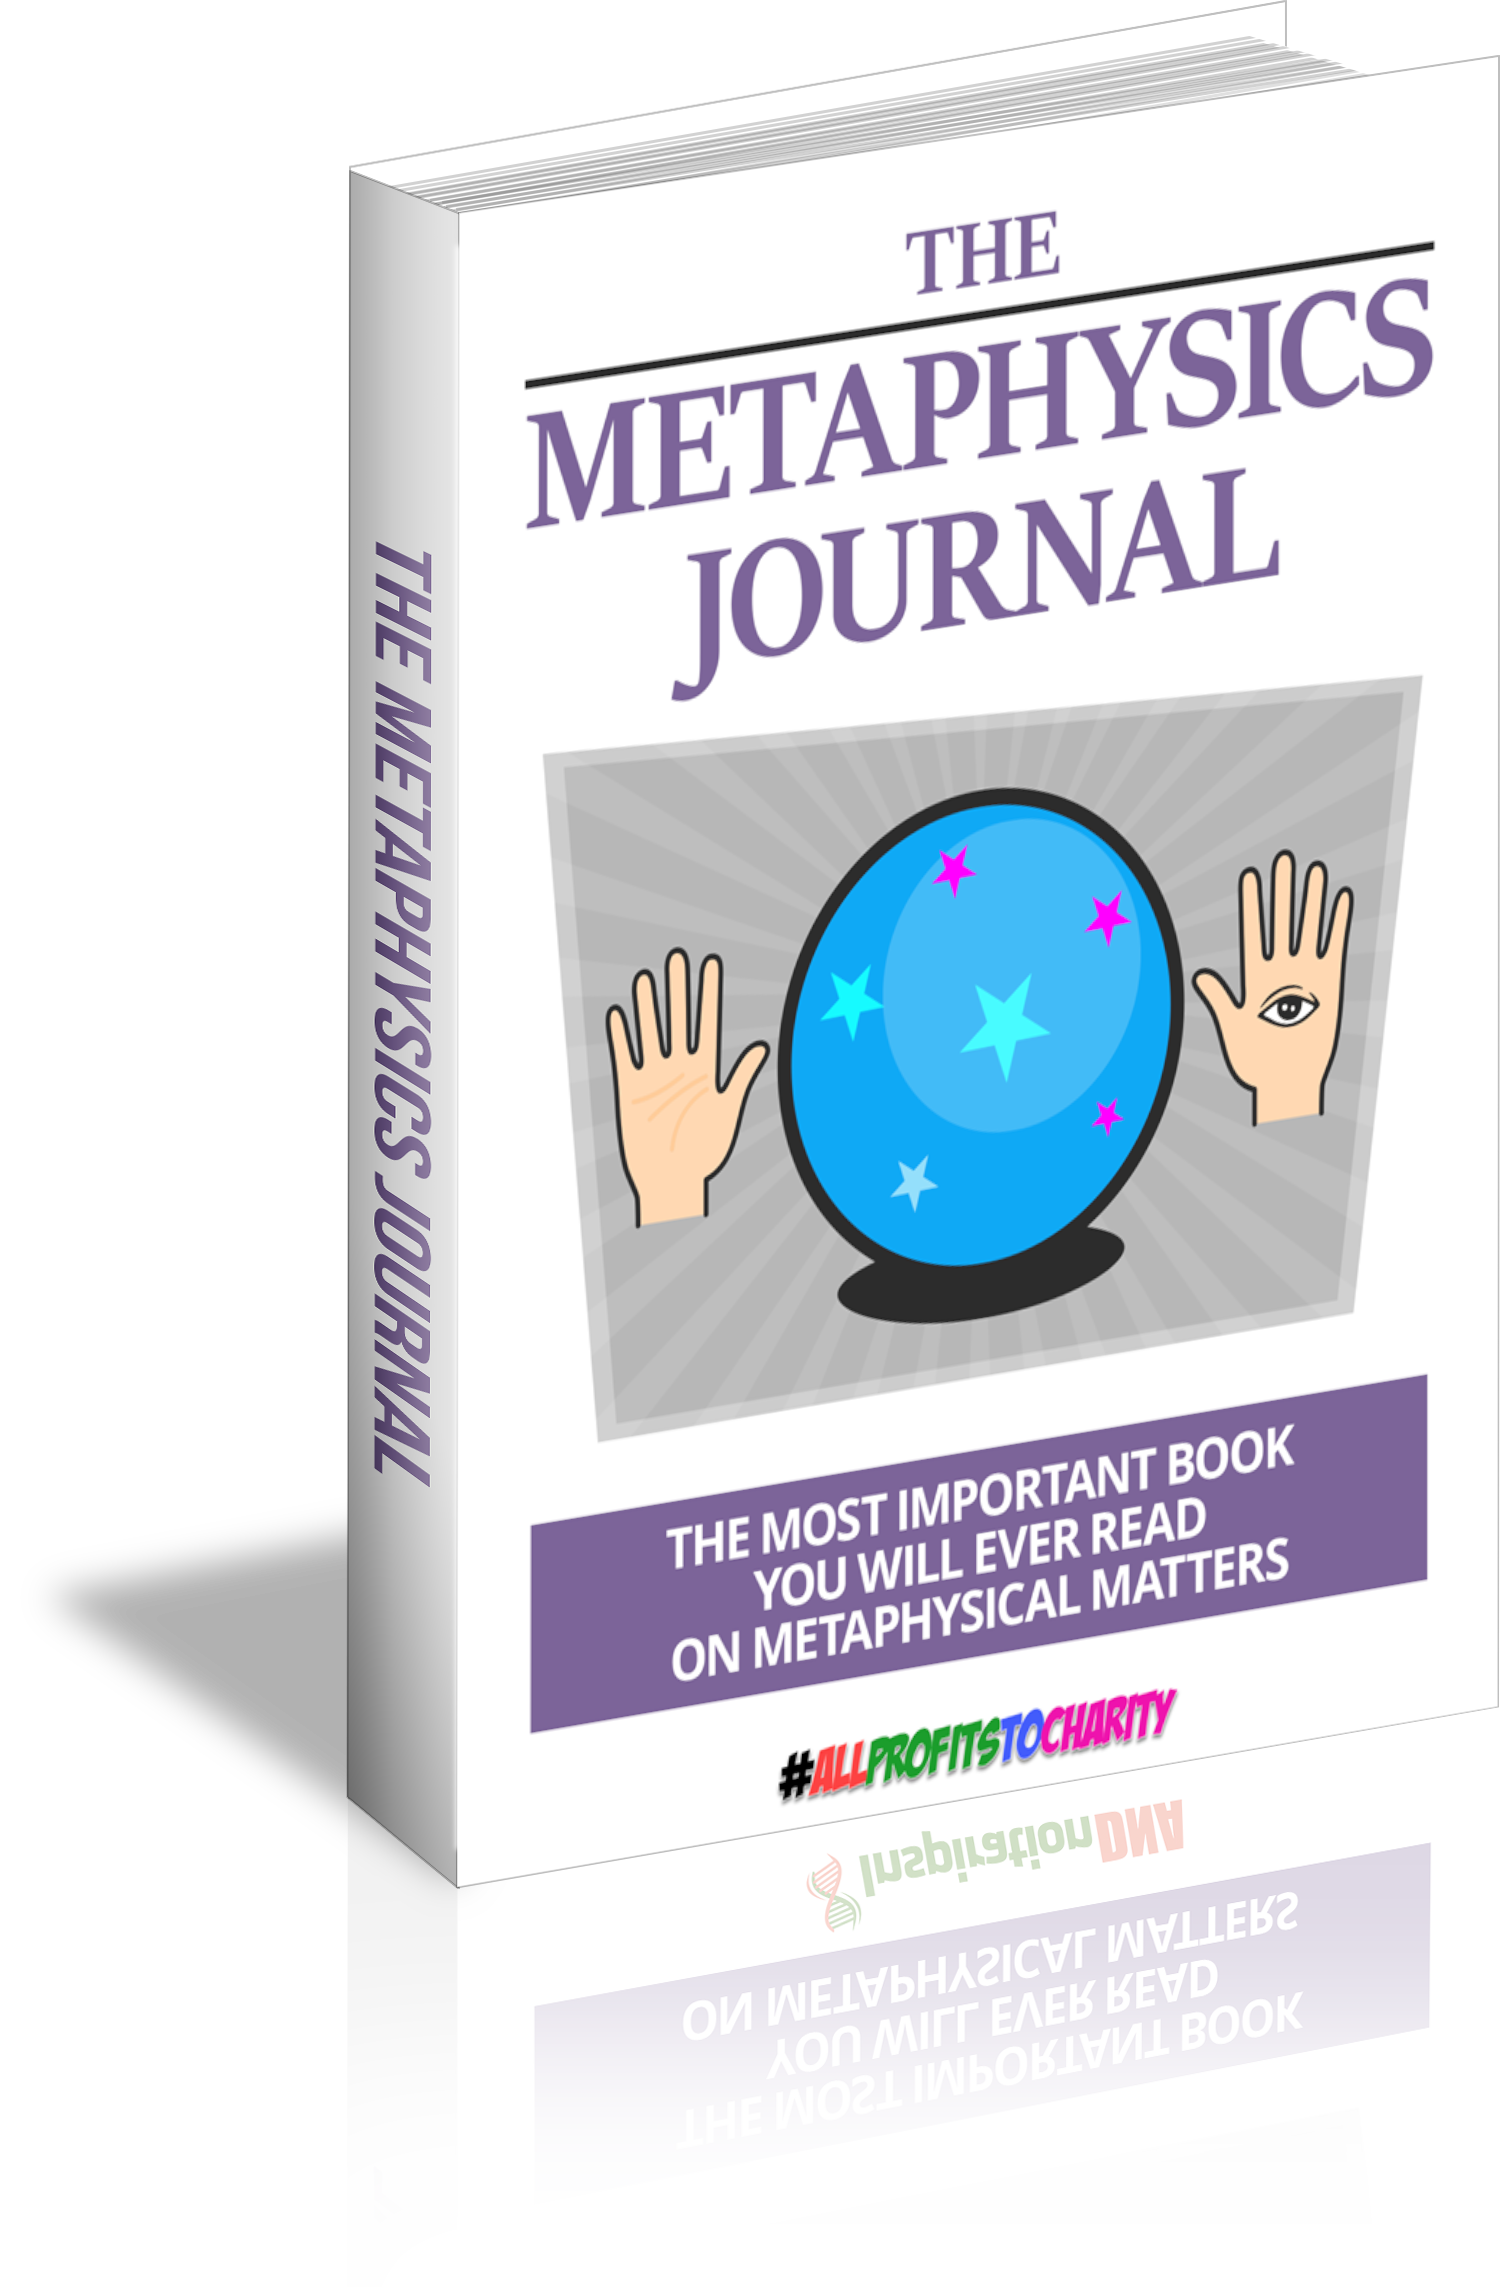 The Metaphysics Journal cover